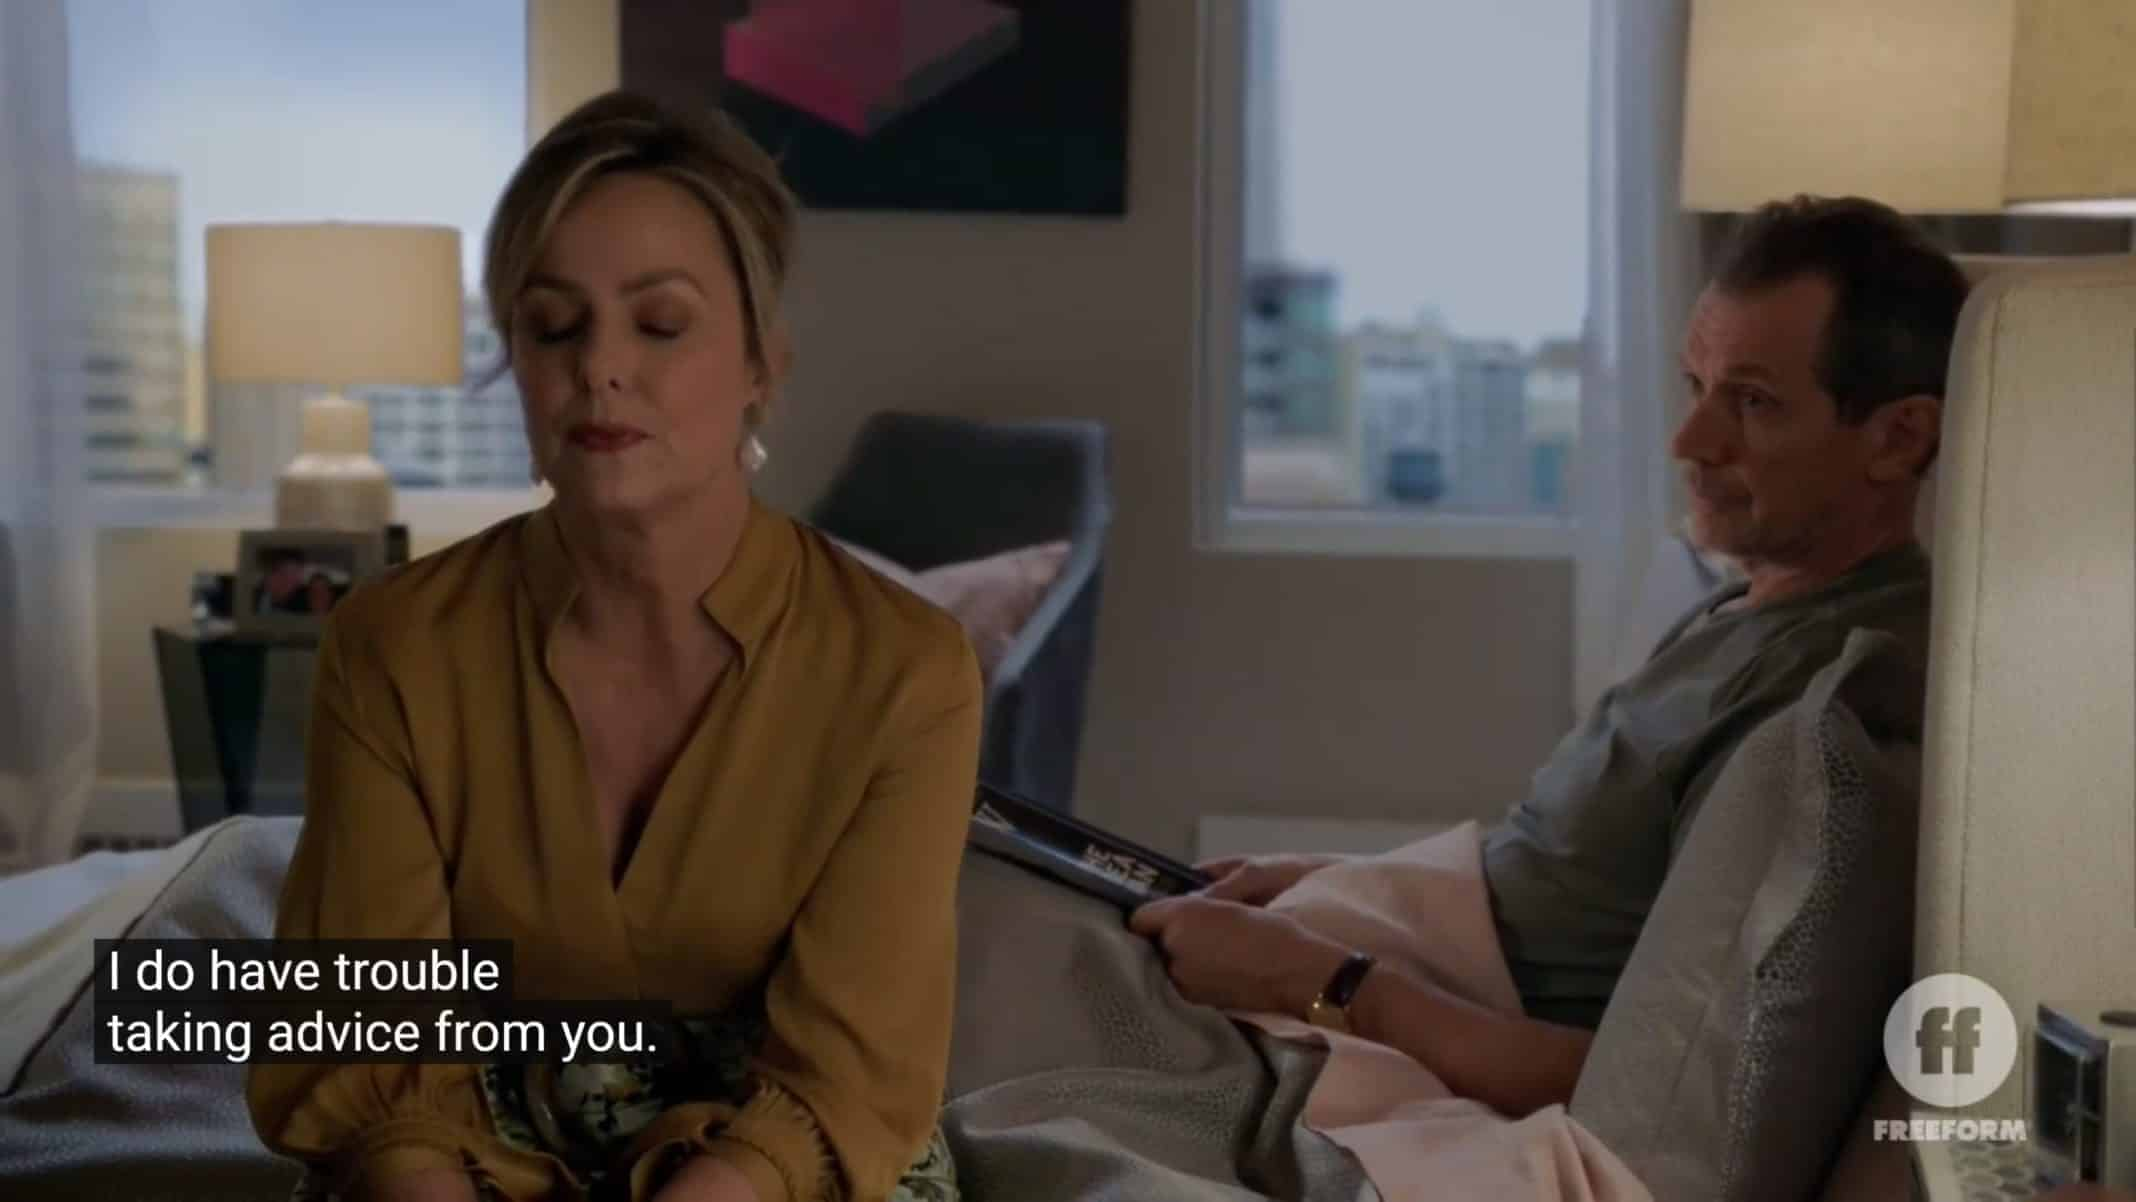 Jacqueline (Melora Hardin) and Ian (Gildart Jackson) talking about ways to strengthen their marriage.